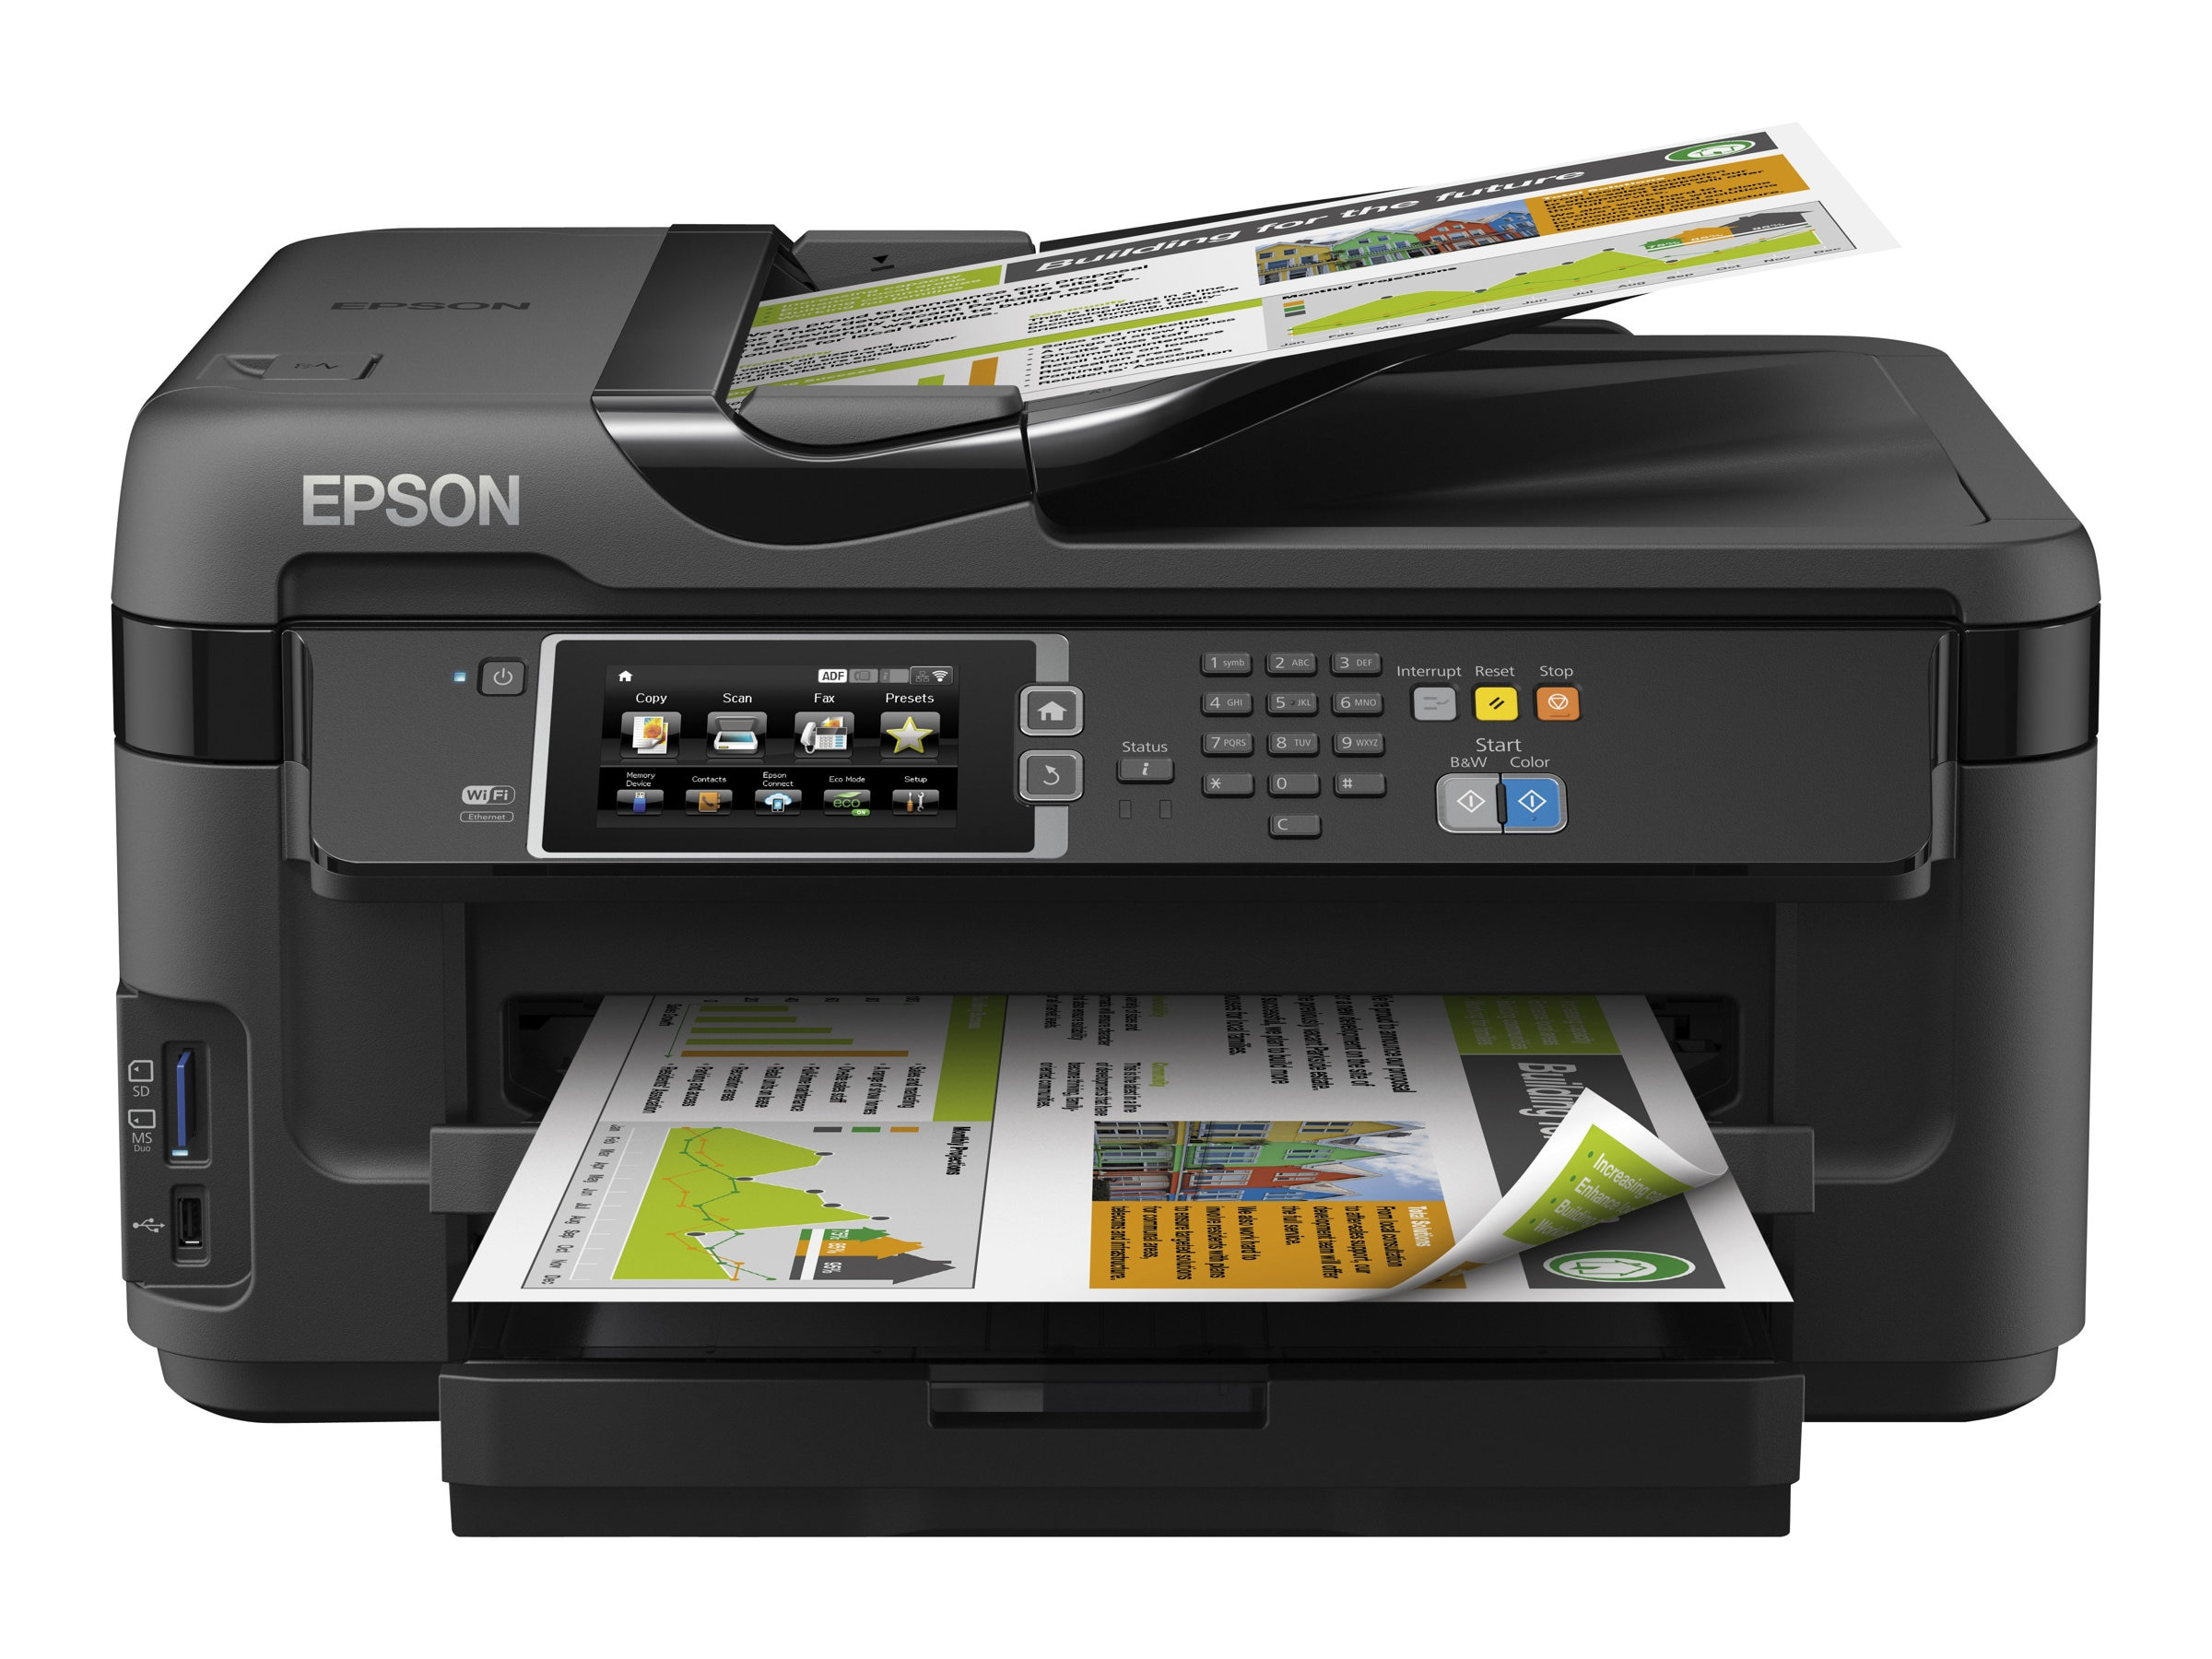 Epson WorkForce WF-7610 All-In-One Printer